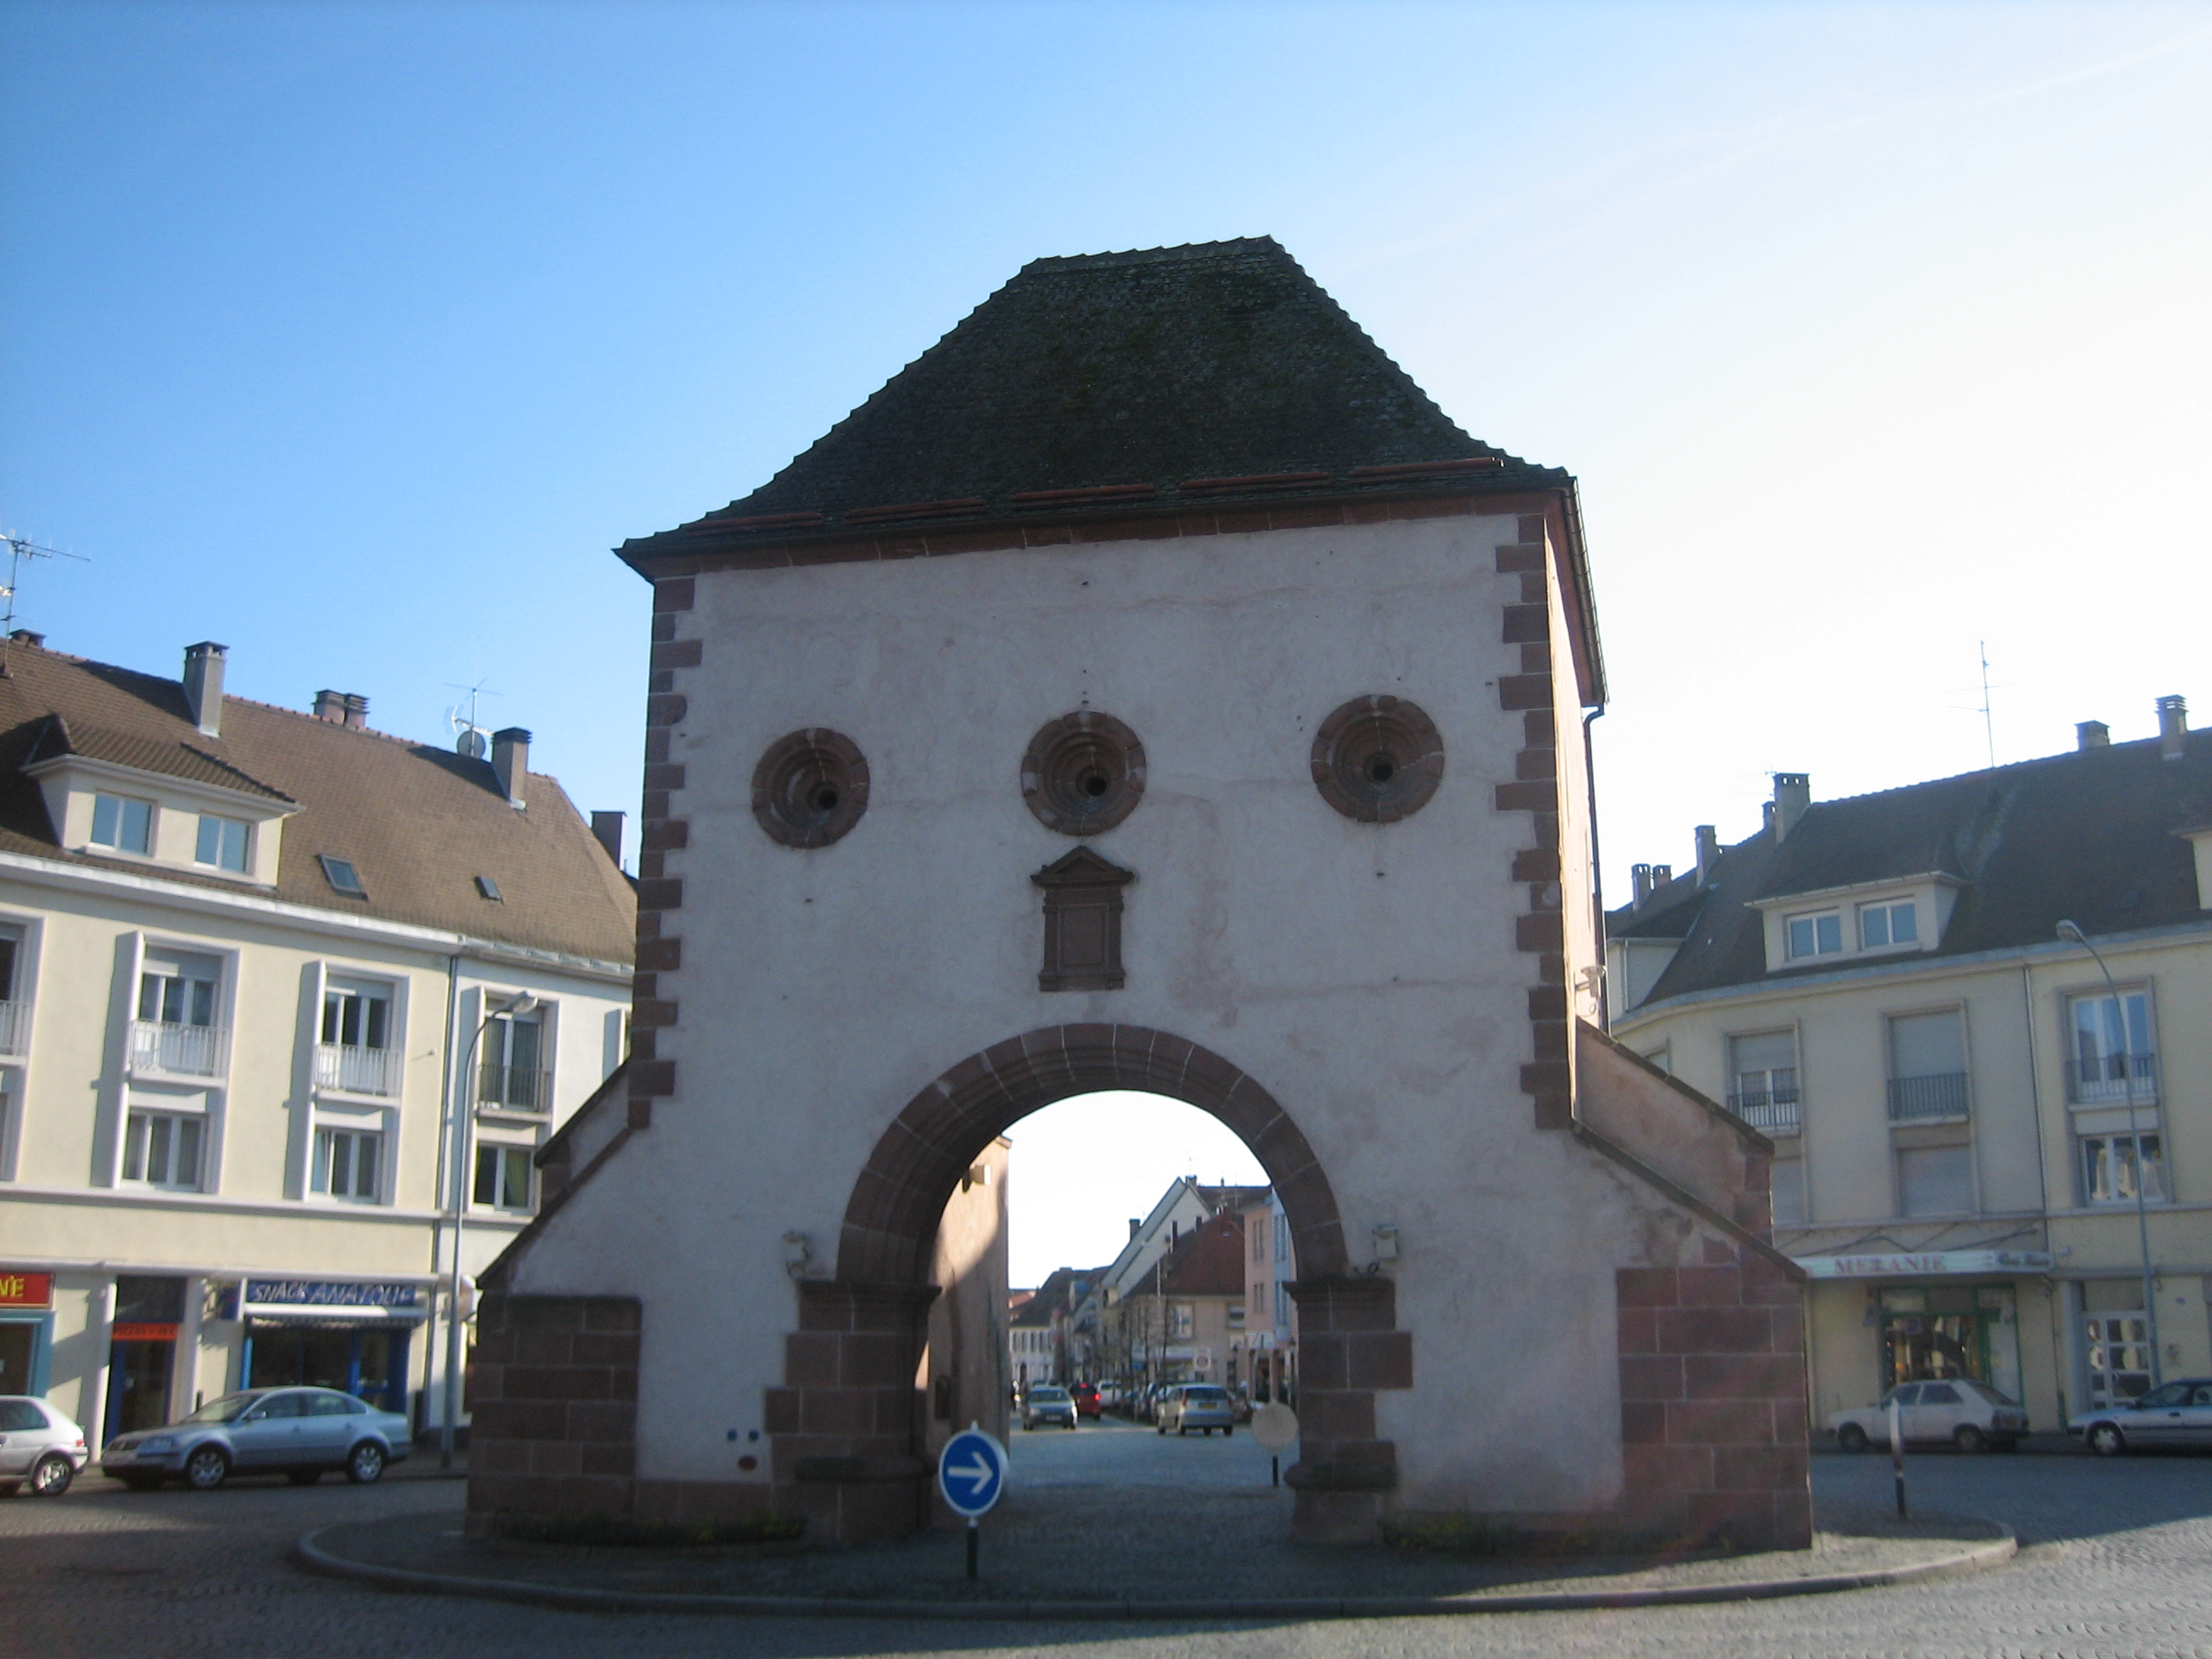 Haguenau France  City pictures : Description EU FR AL 67@Haguenau Porte de Wissembourg